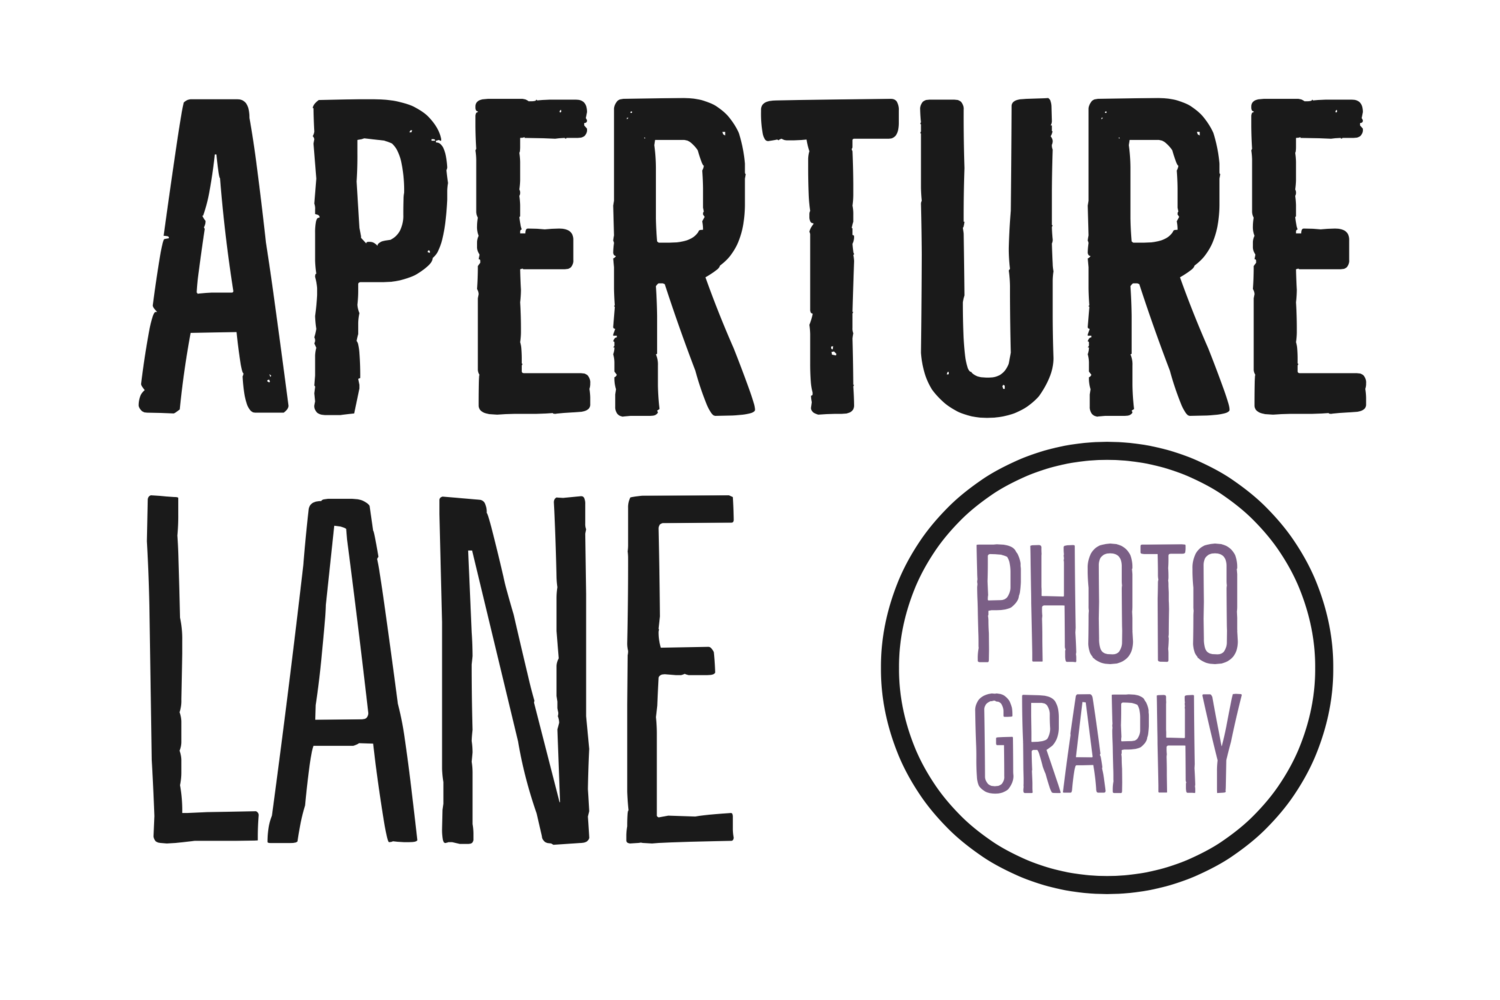 Aperture Lane Photography